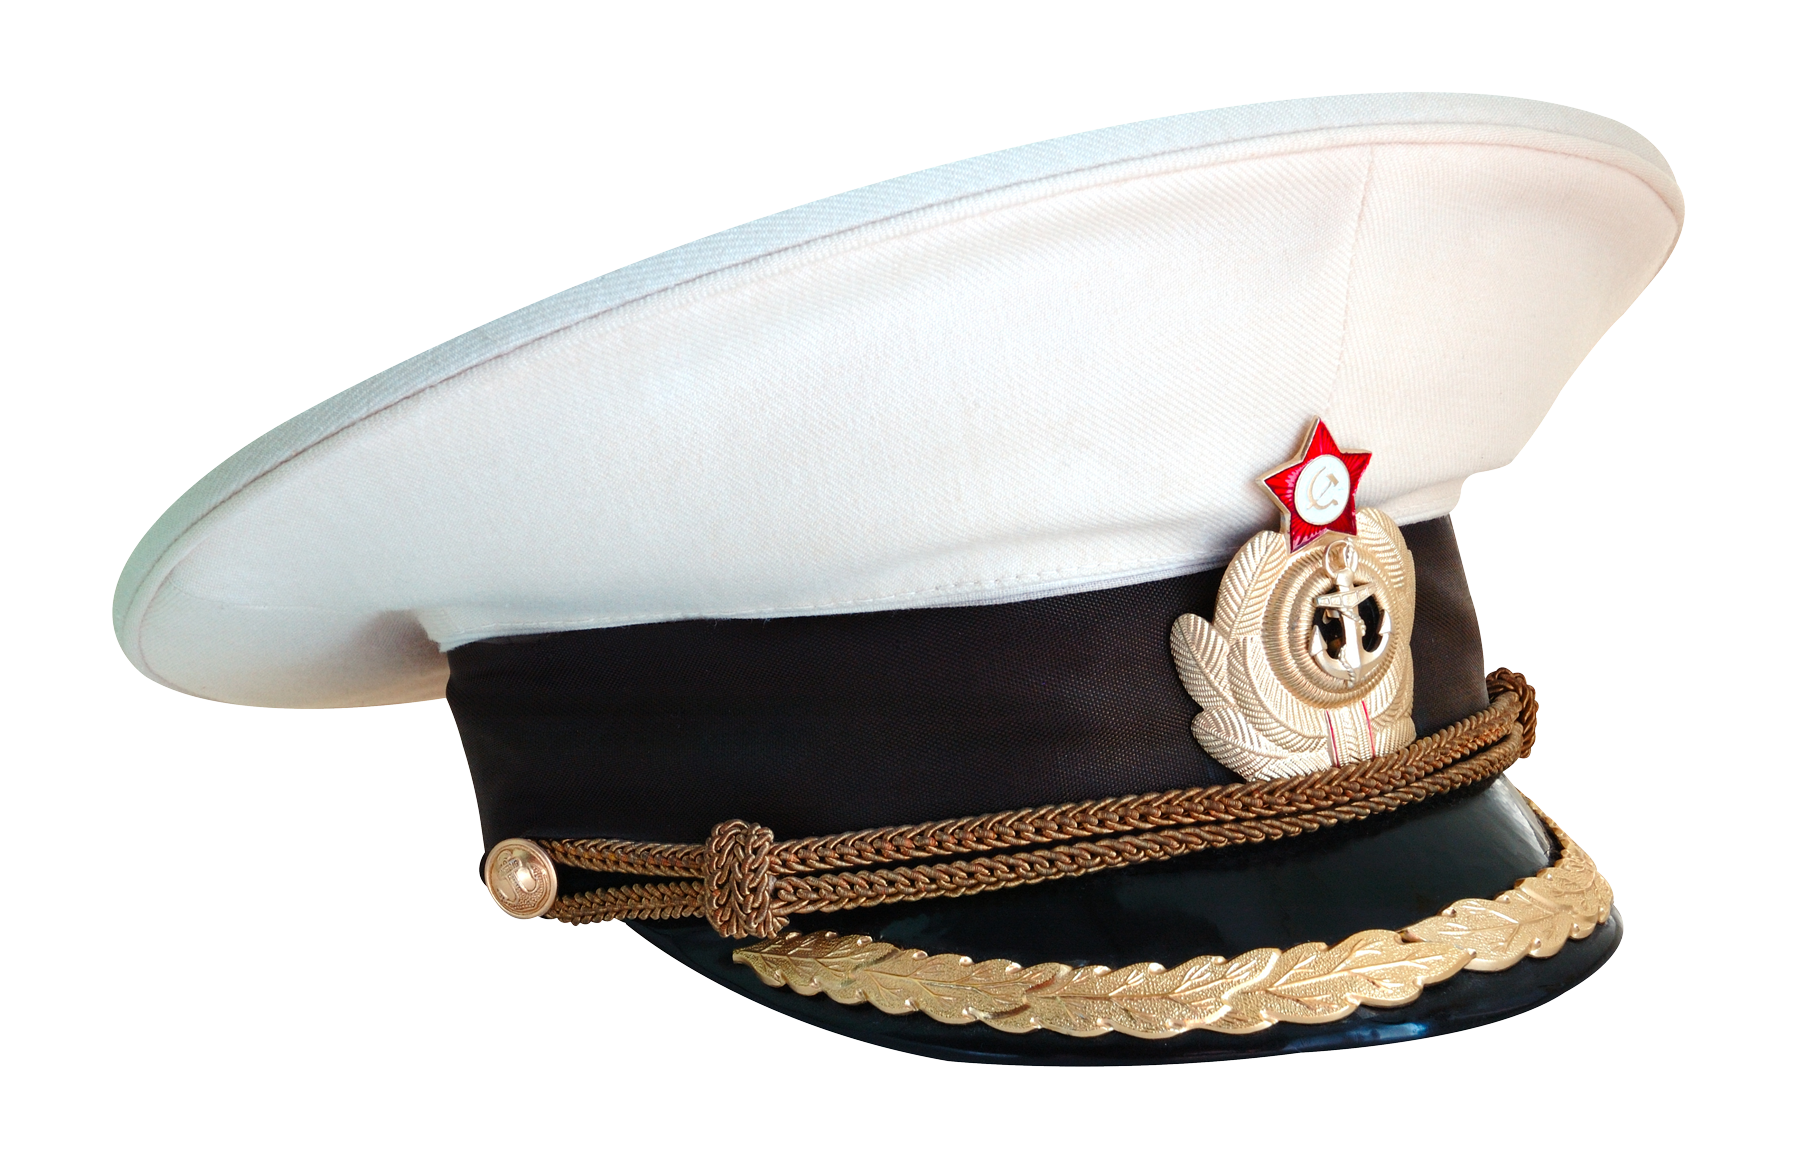 Sailor hat png. Cap captain navy image